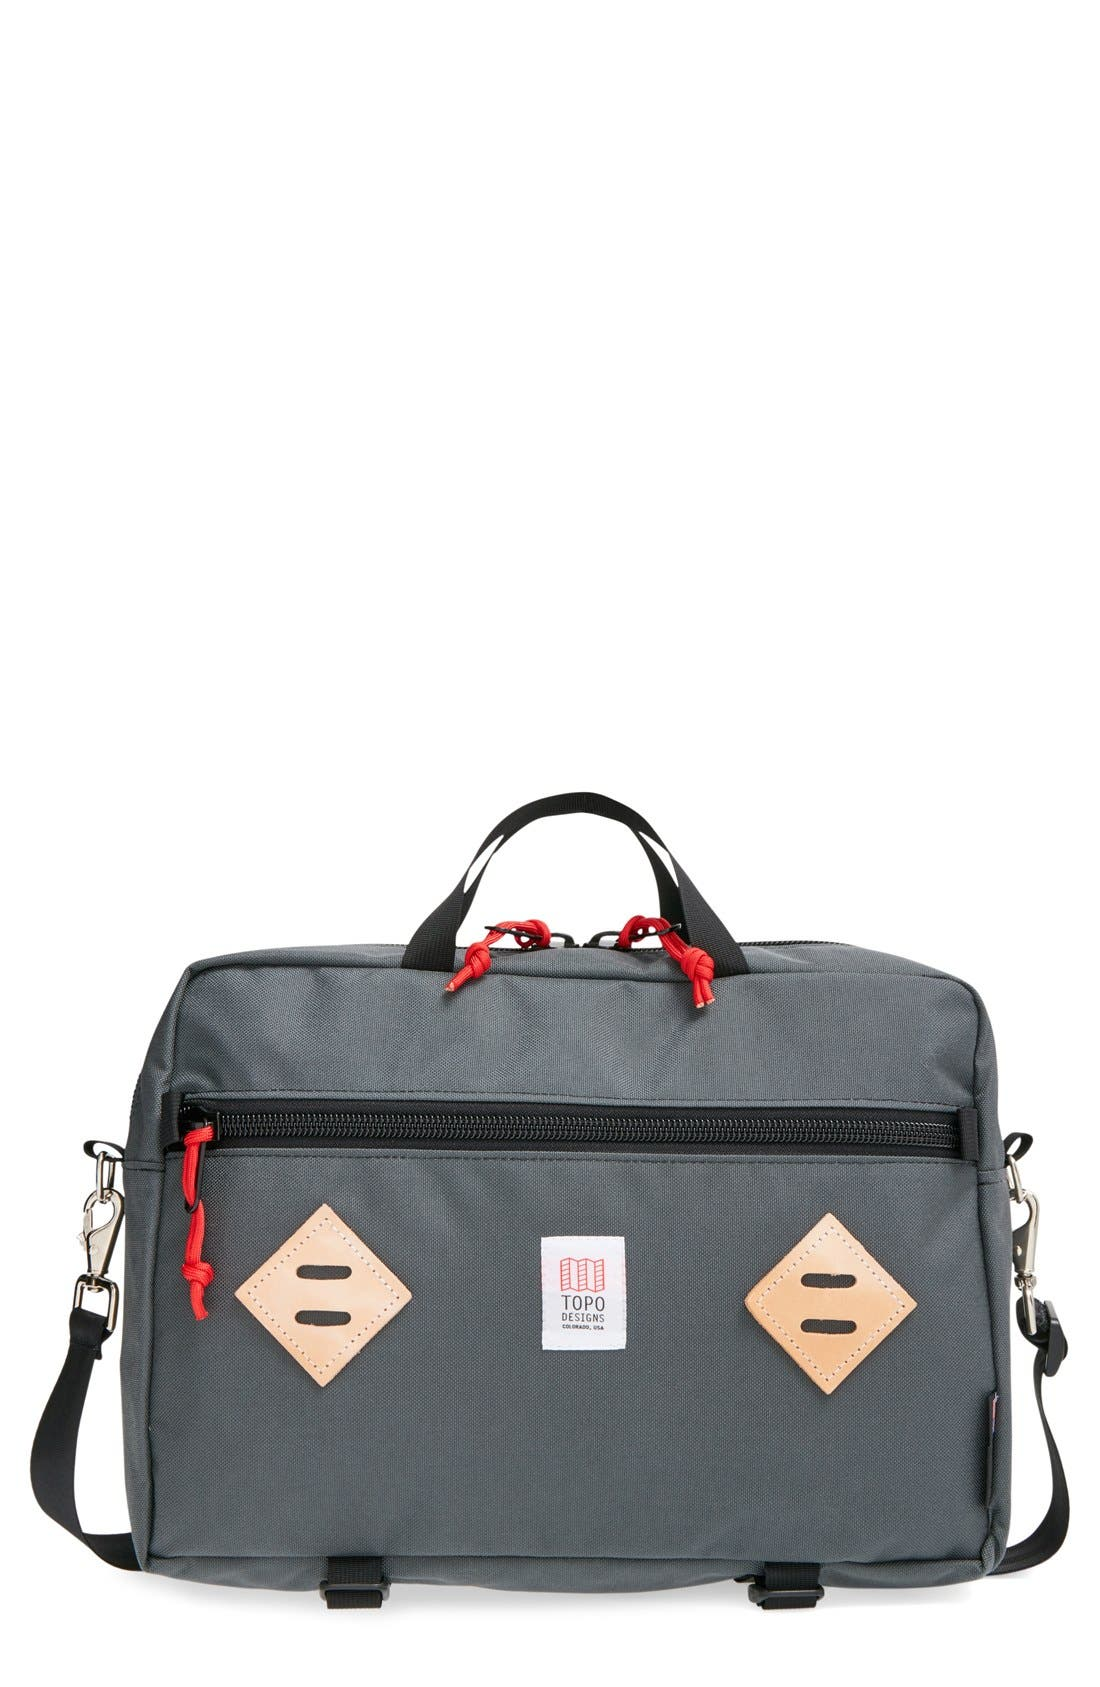 Topo Designs 'Mountain' Briefcase